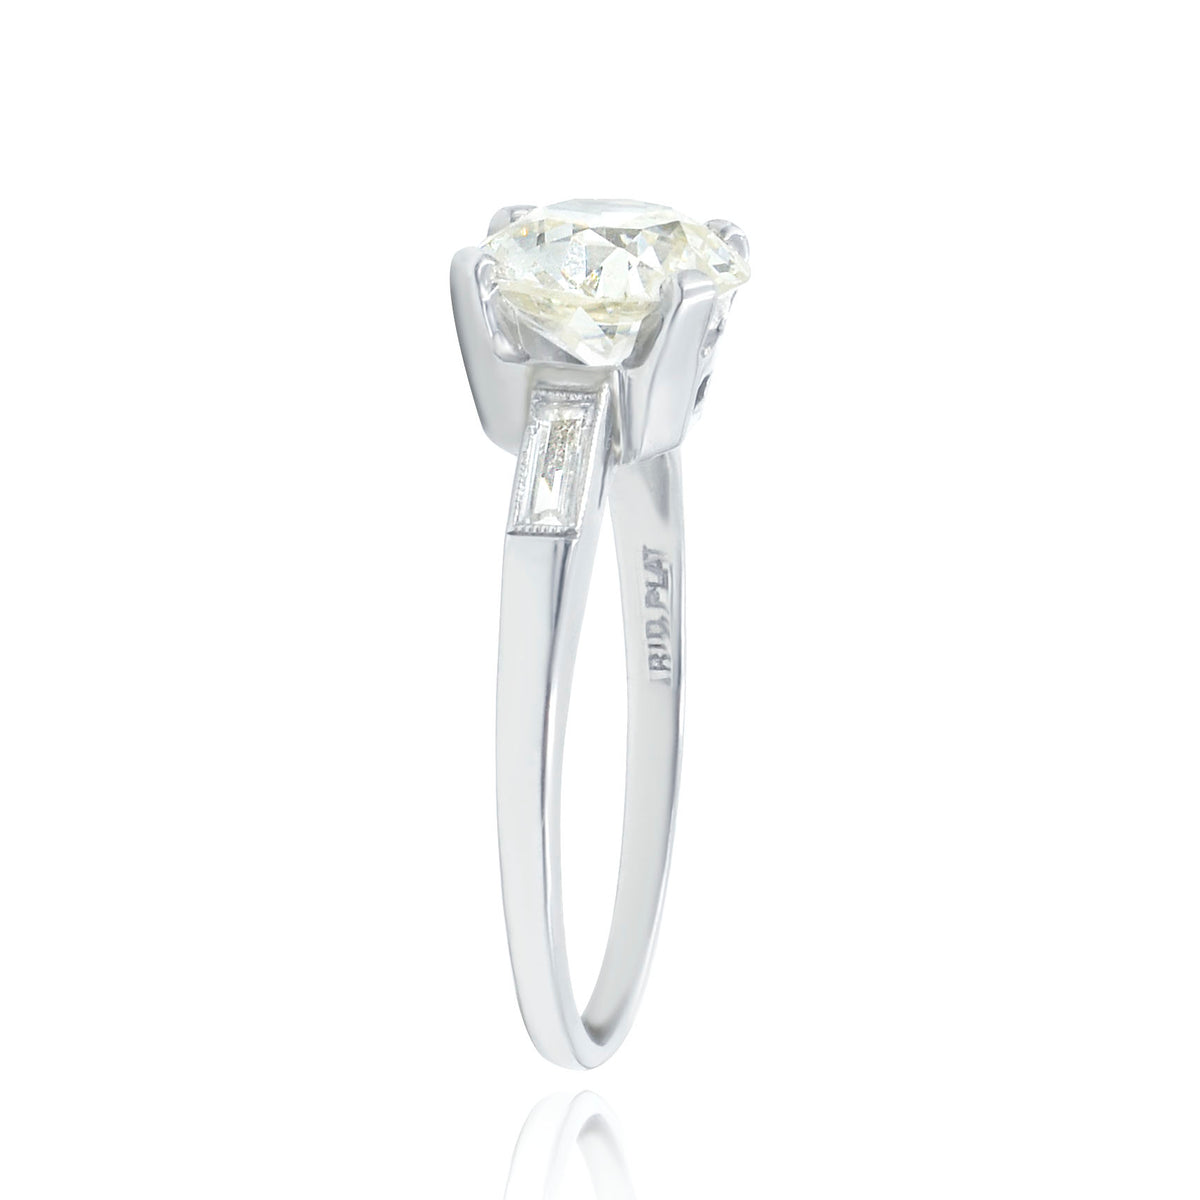 Platinum Engagement Ring with 1.92ct Euro Cut Diamond